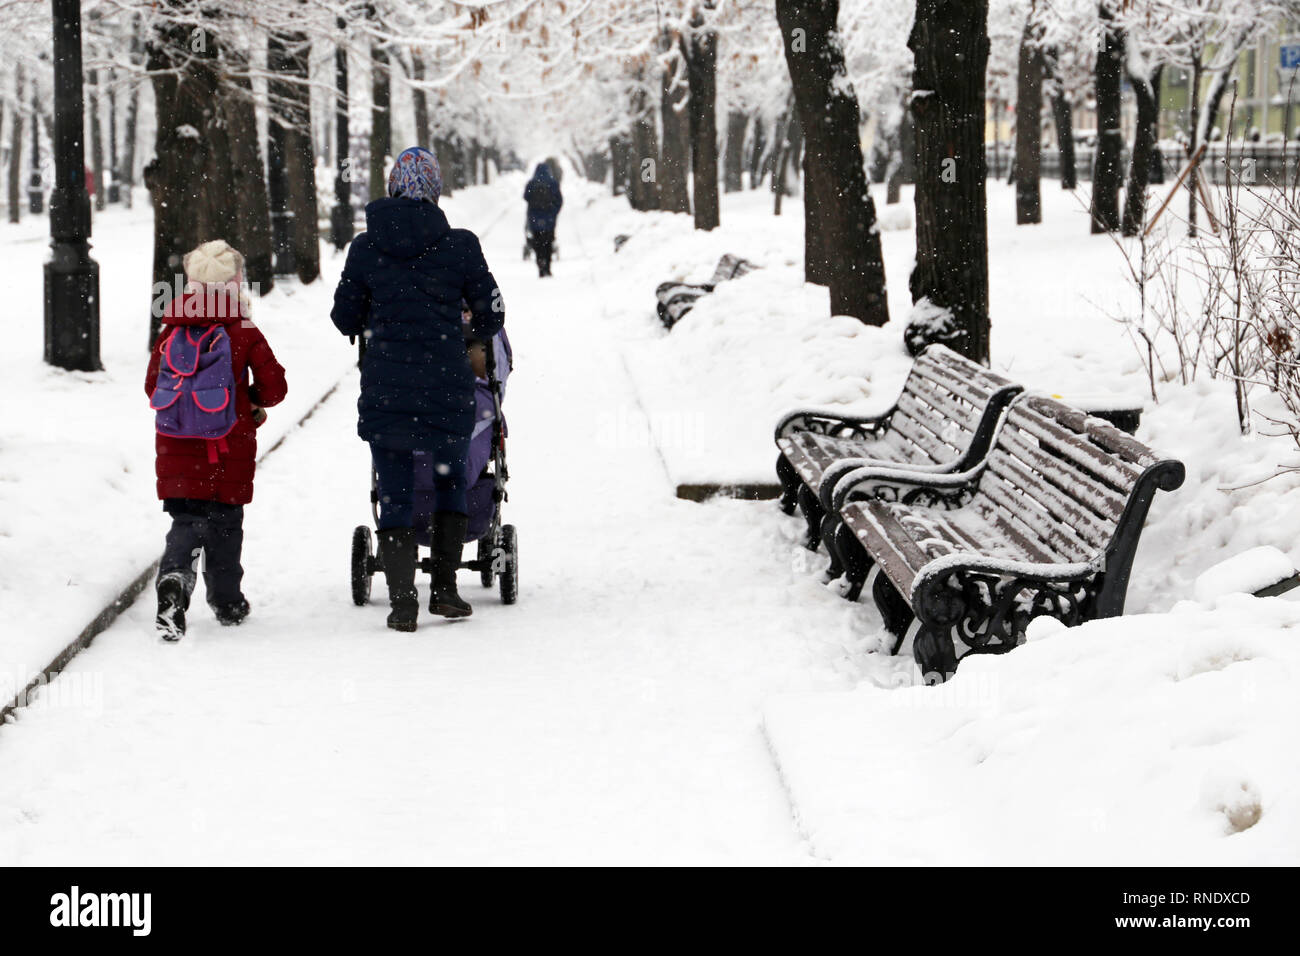 Mom with a stroller and a little daughter walking in the winter park during the snowfall. Going to school, snow weather, single mother - Stock Image